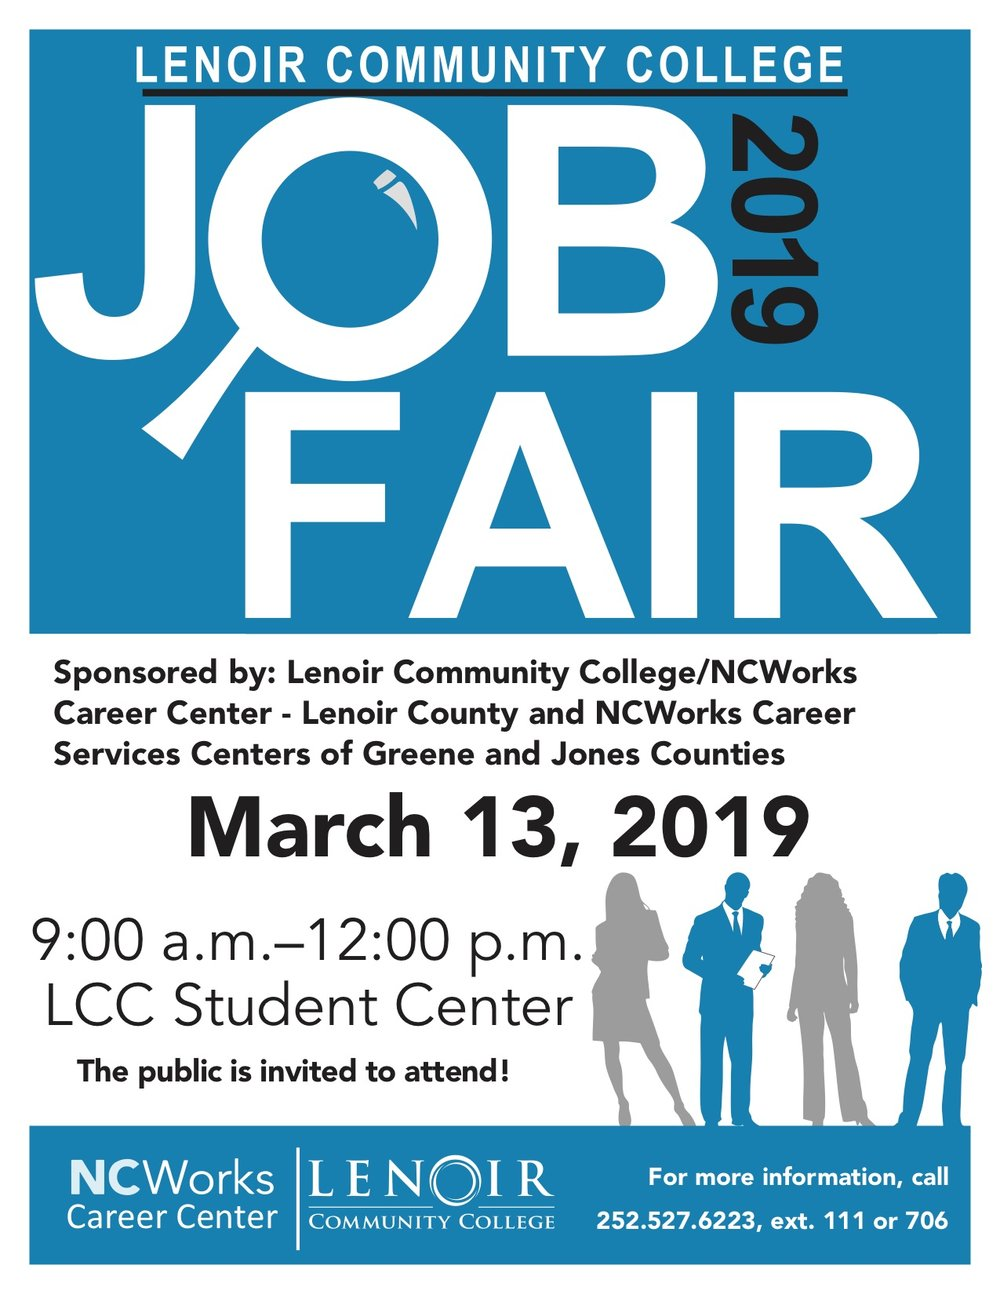 Job Fair Flyer 2019.jpg